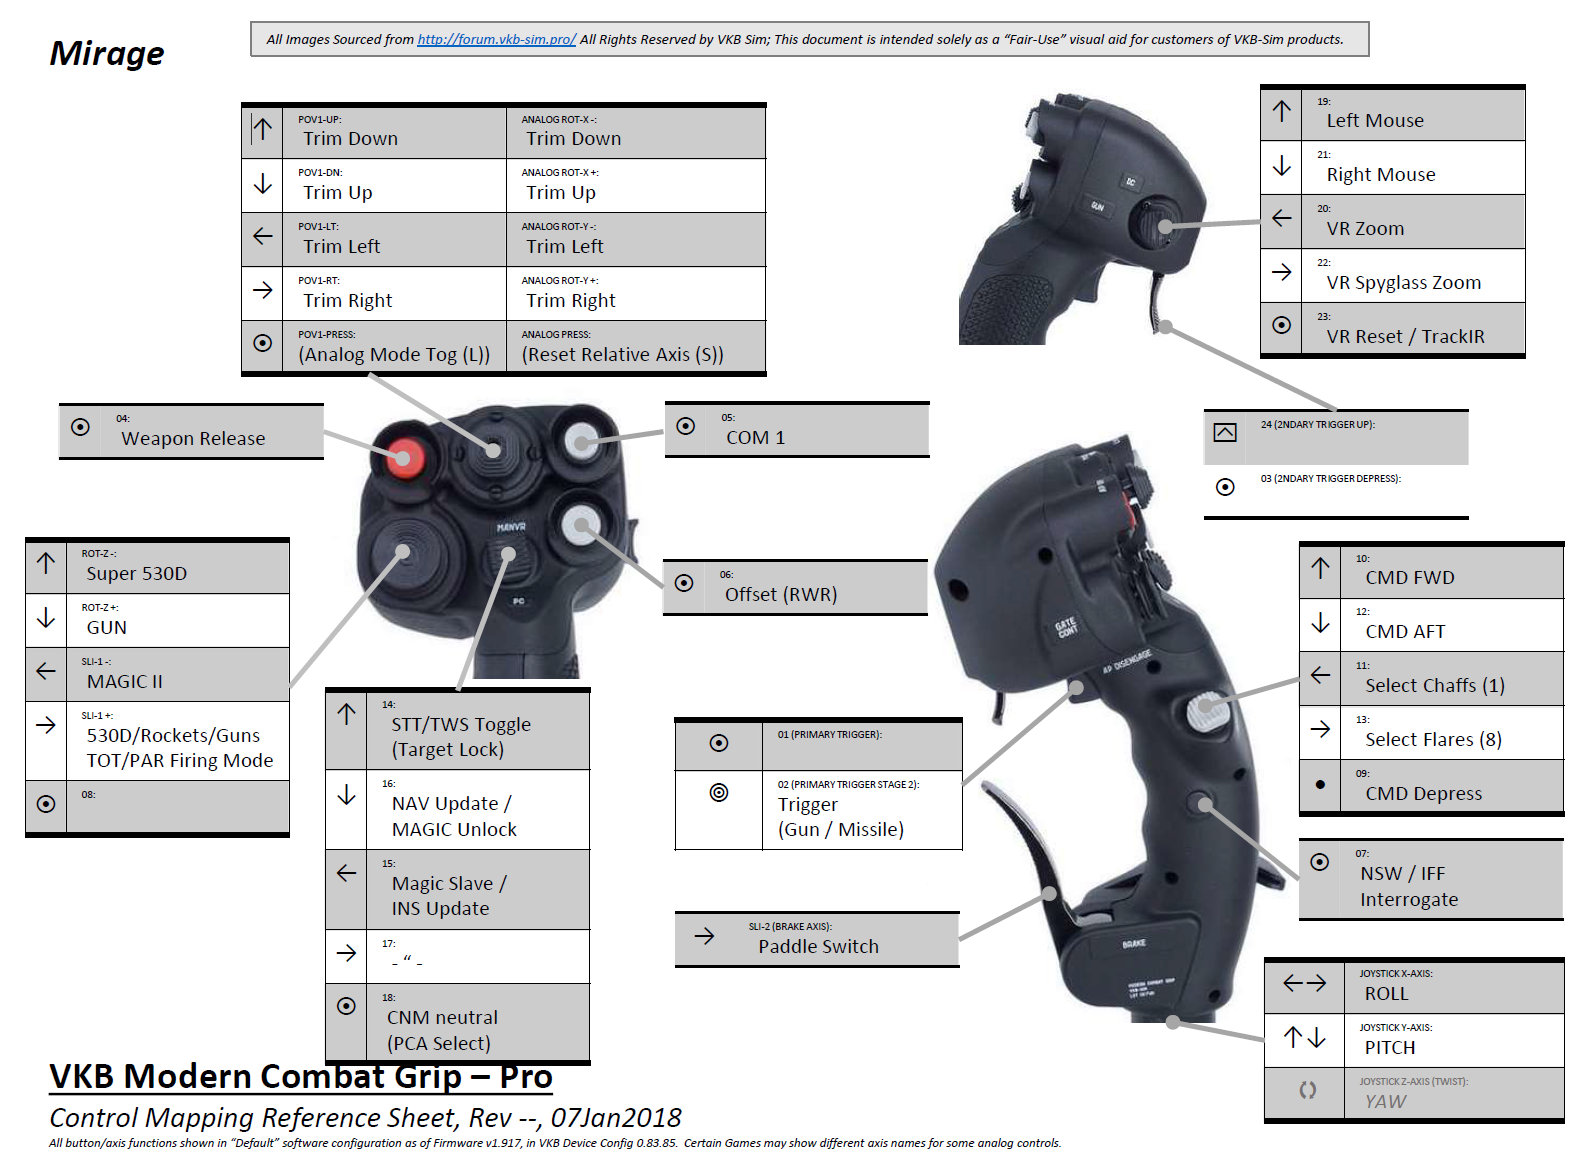 Profile VKB Modern Combat Grip Pro (MCG Pro) & Warthog Throttle for M-2000C